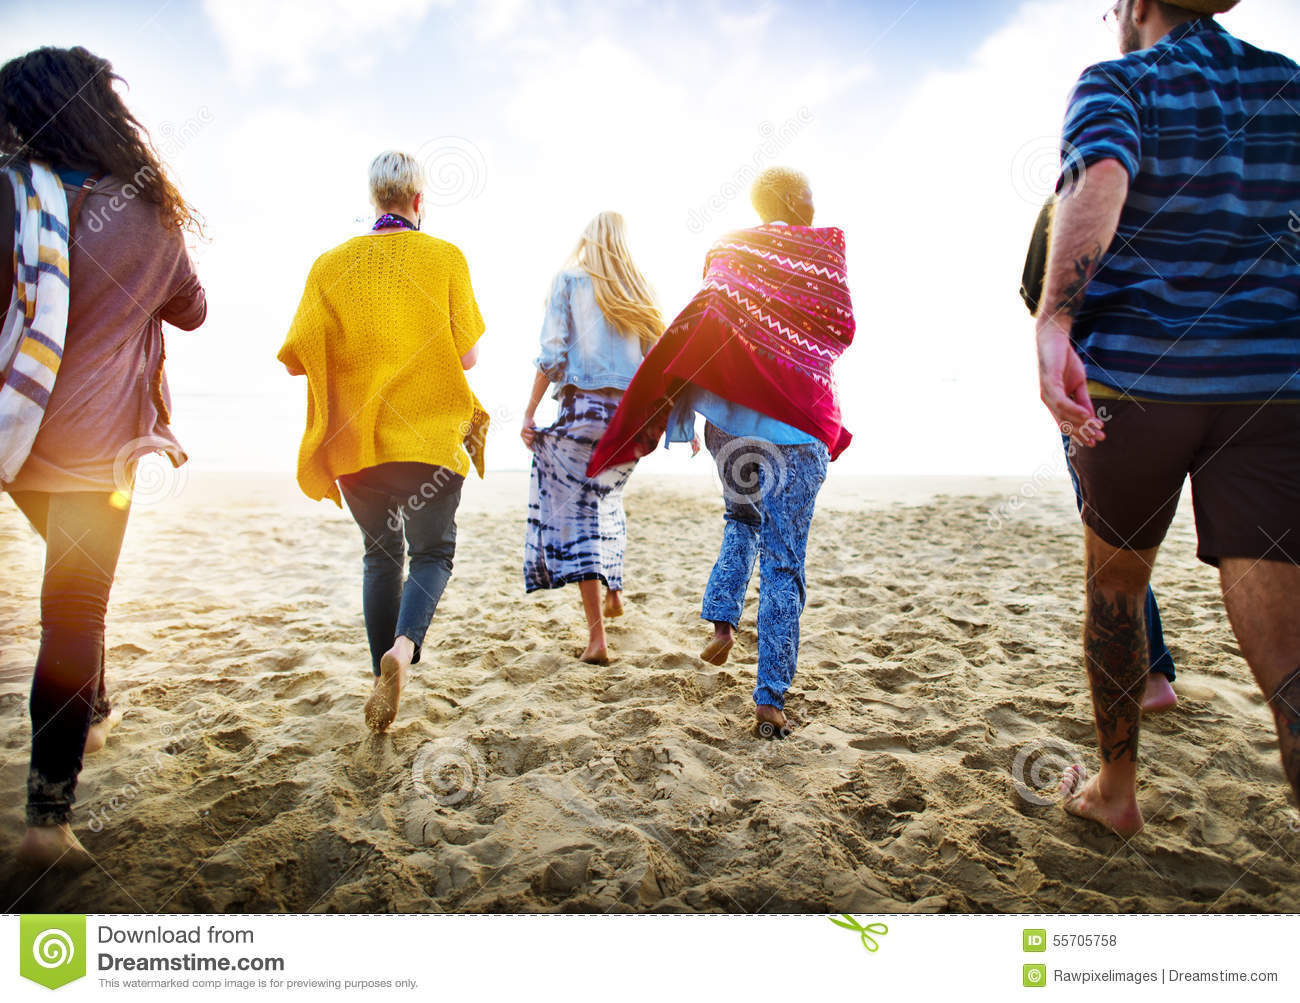 Download Friendship Bonding Relaxation Summer Beach Happiness Concept Stock Photo - Image of ethnic, holiday: 55705758